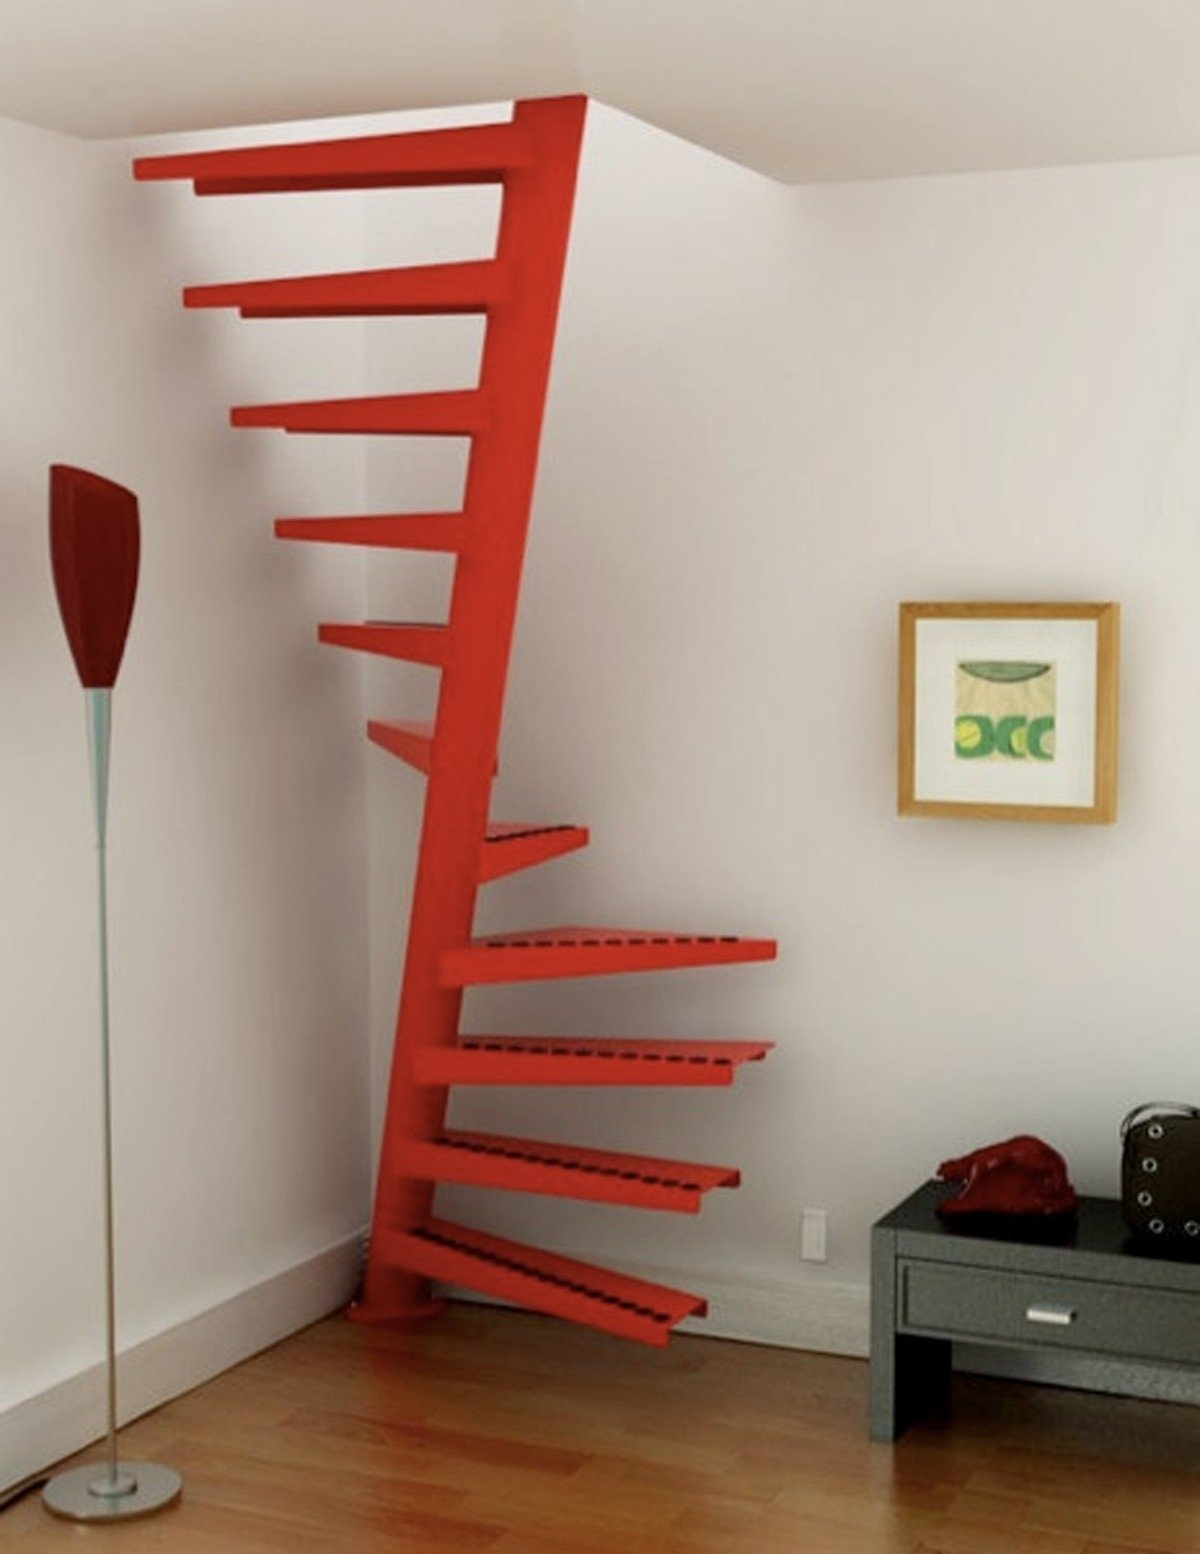 10 Famous Staircase Ideas For Small Spaces fabulous staircase ideas for small spaces interior amazing design of 2020